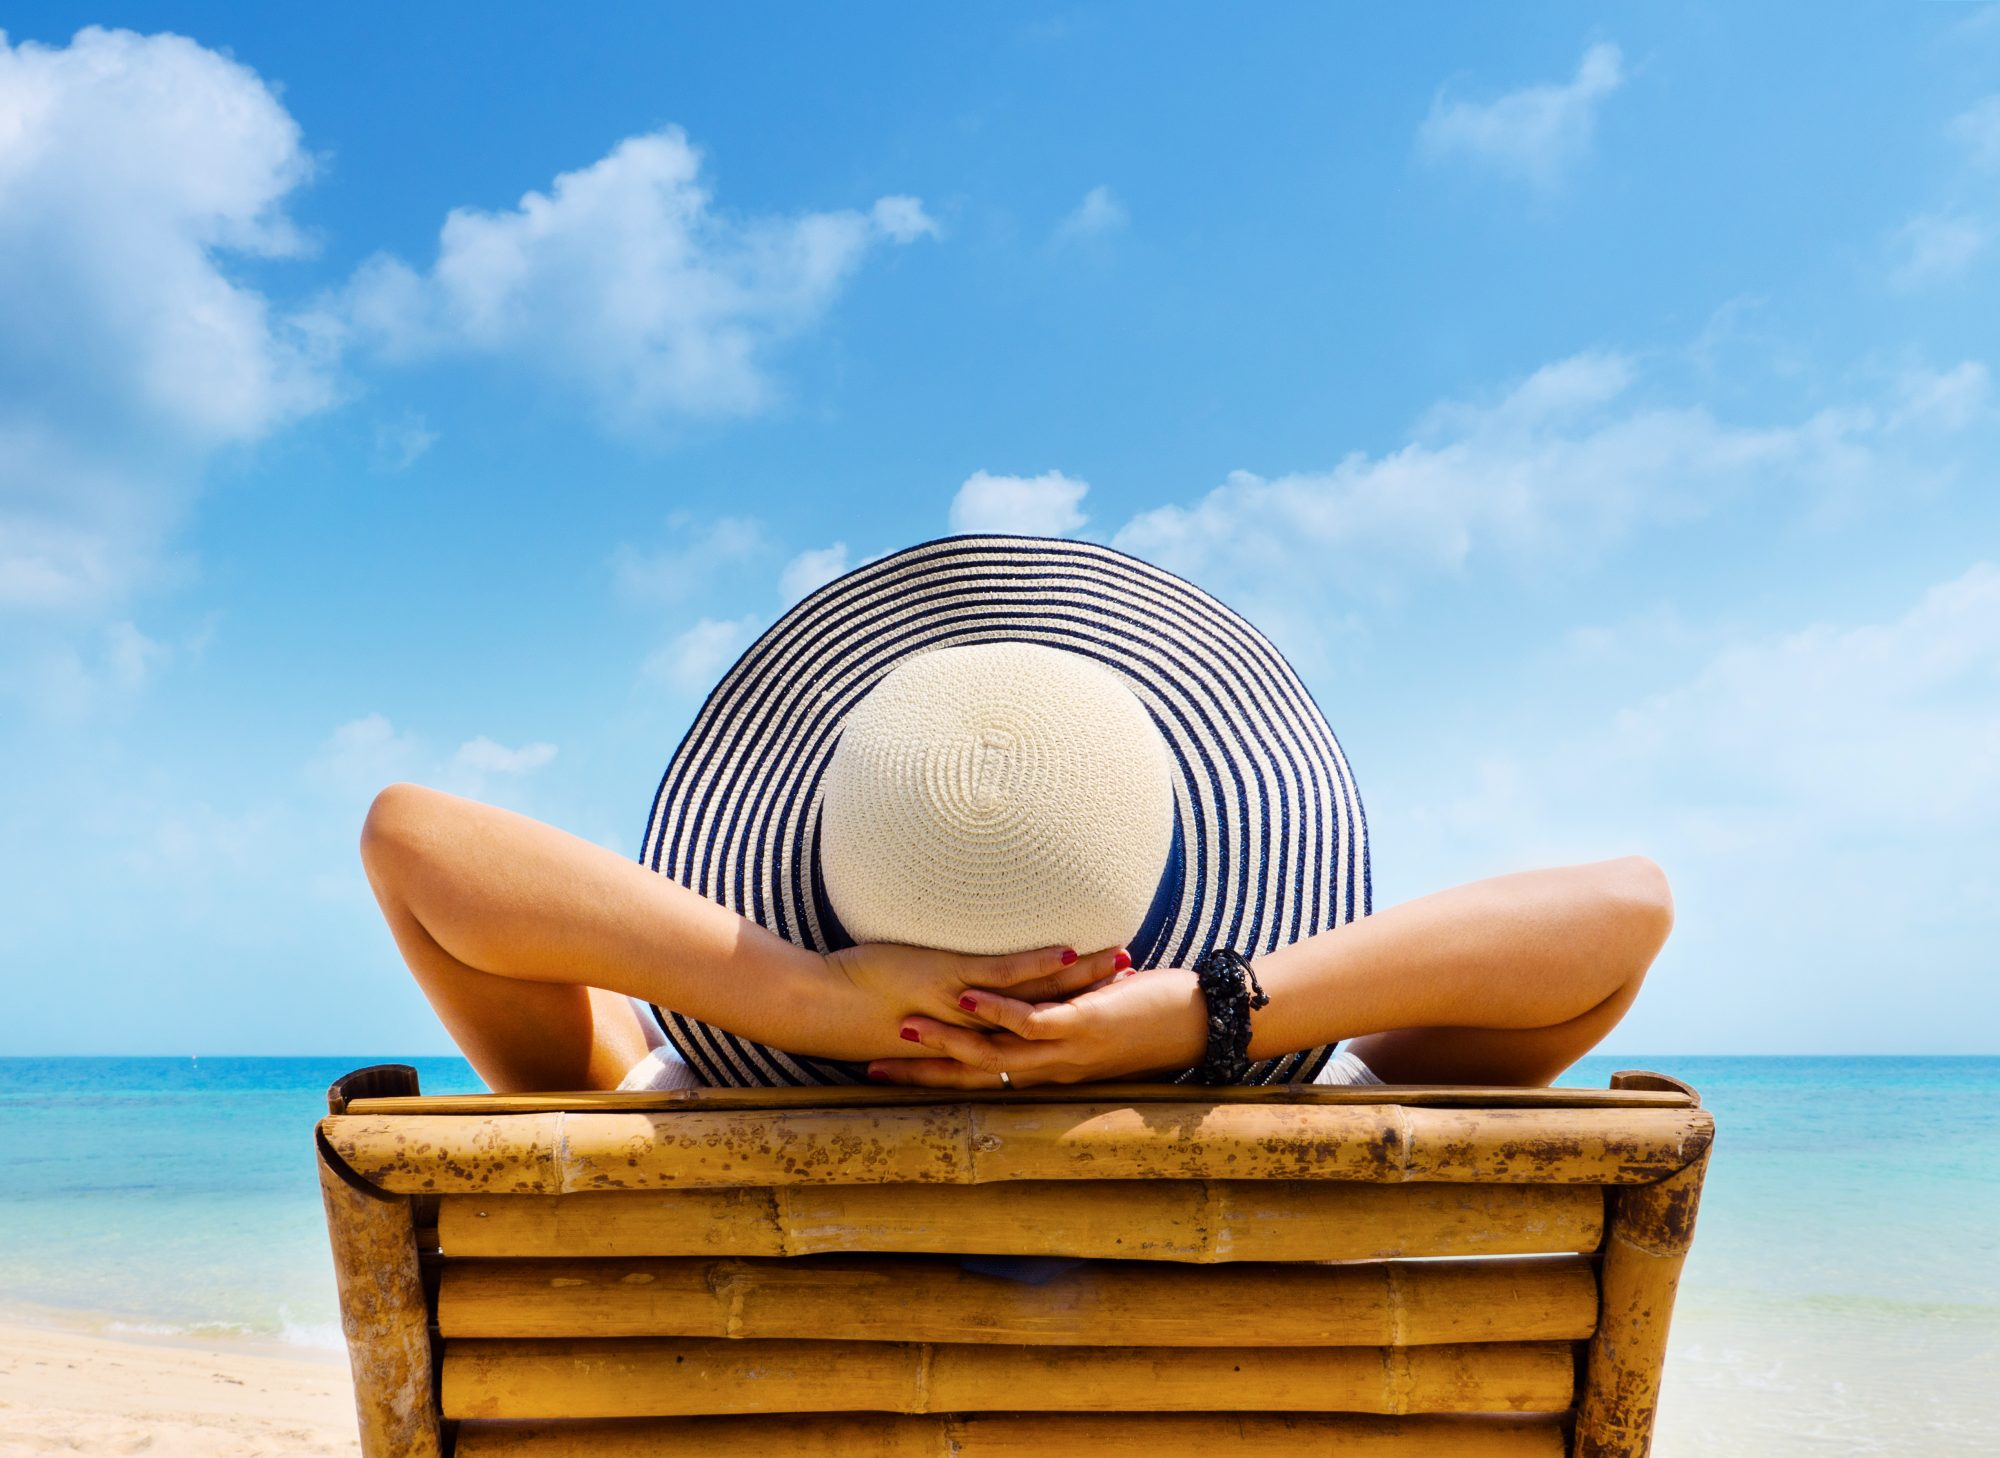 Woman Sitting in Lounge Chair with Sunhat